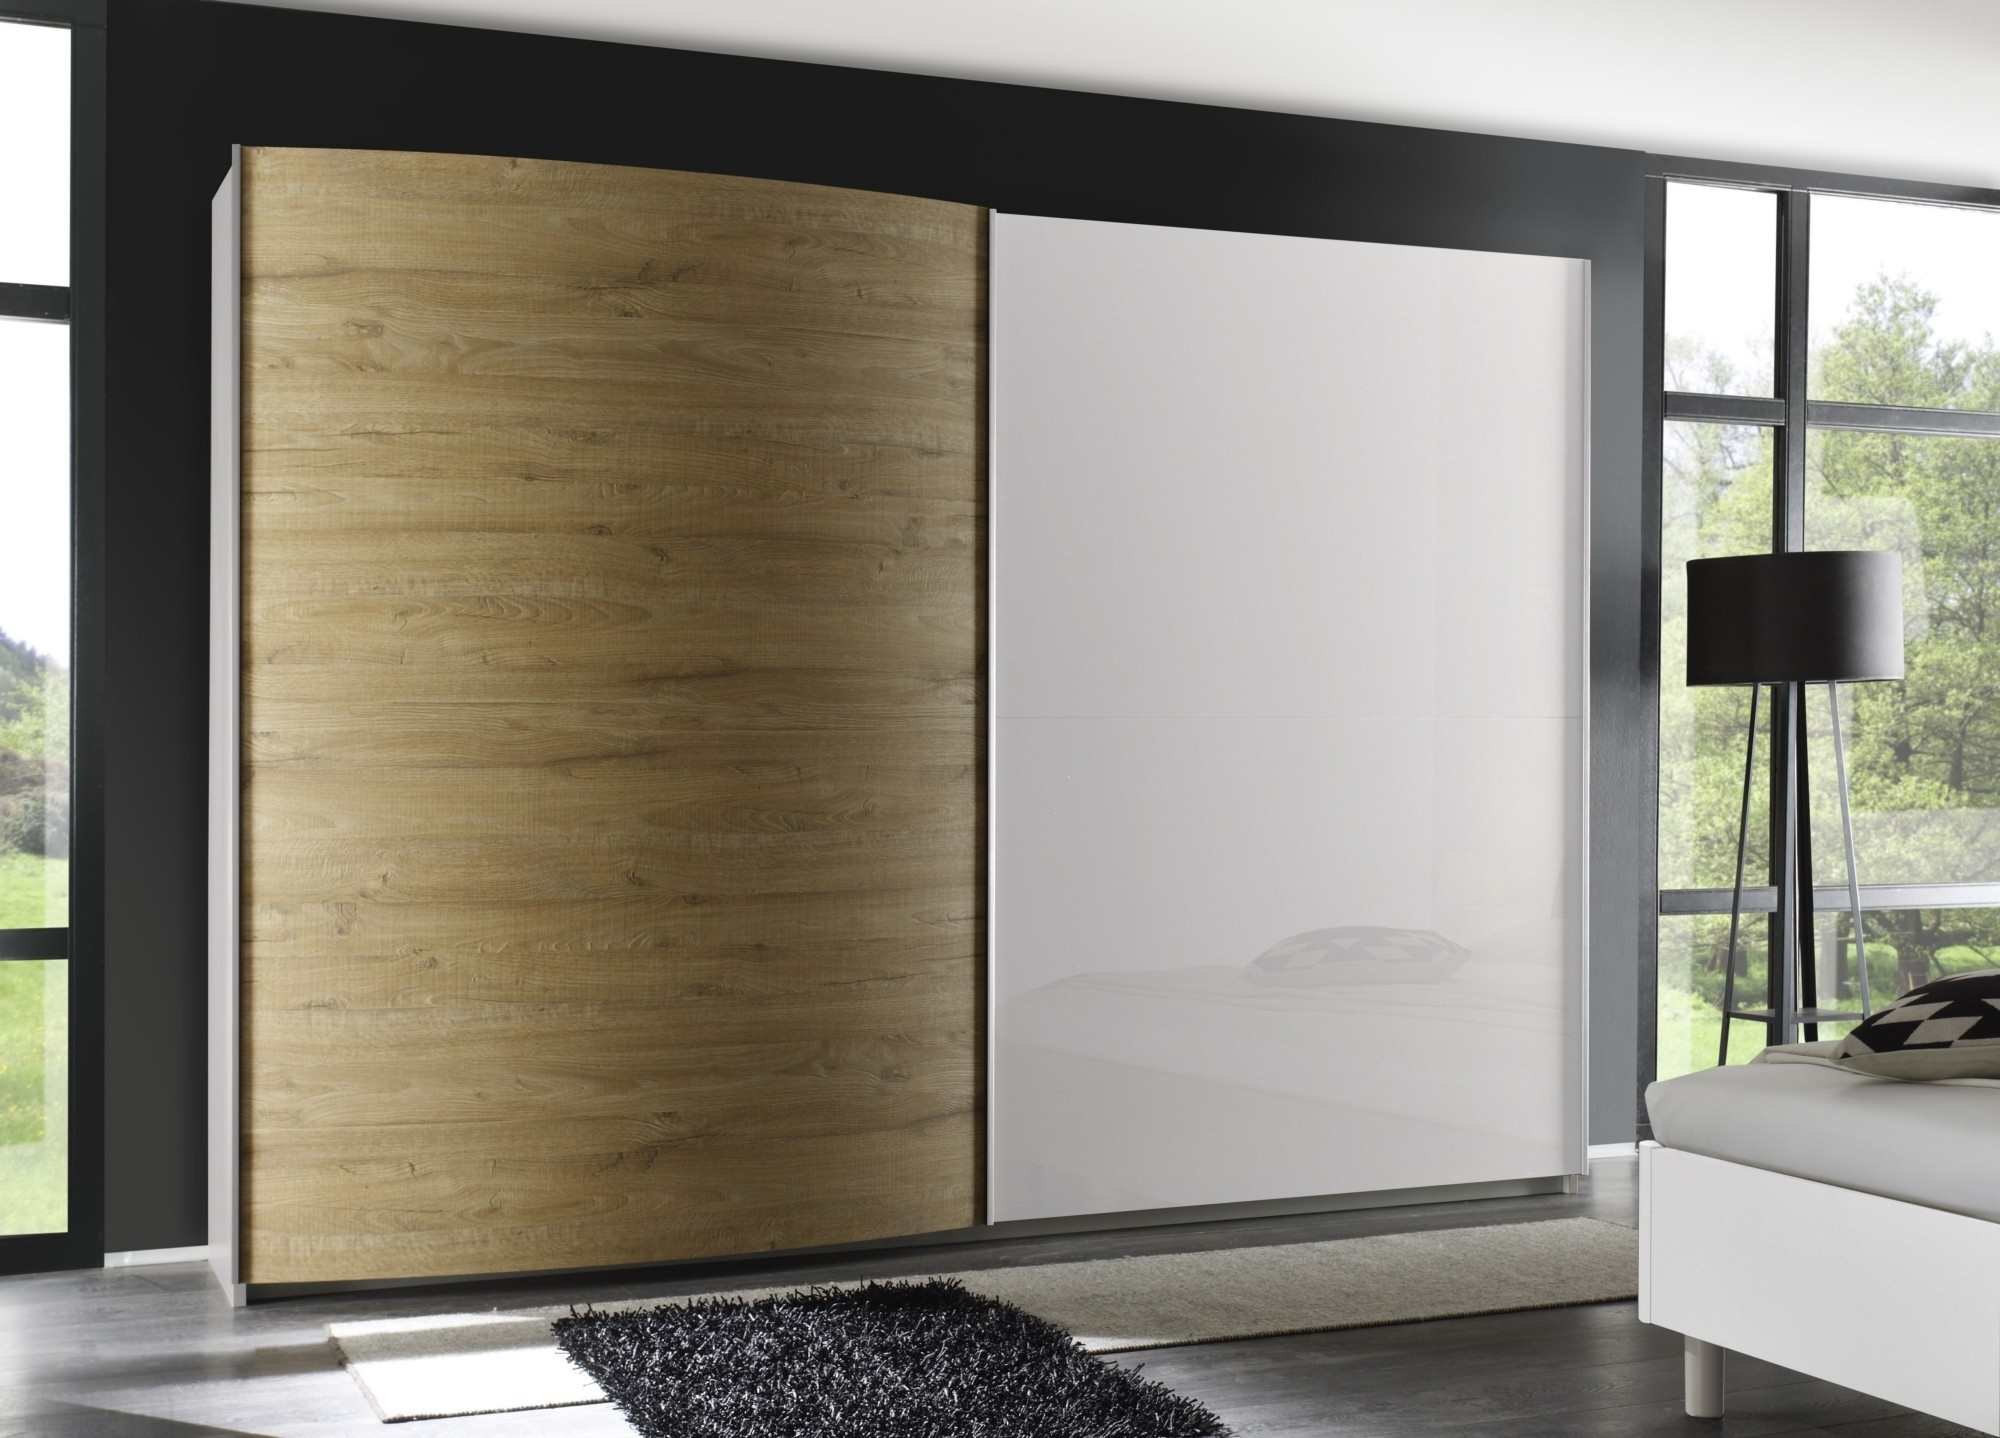 Tambura Curved Sliding Doors Wardrobe, White + Miele Buy Online At Within Recent Curved Wardrobe Doors (View 15 of 15)